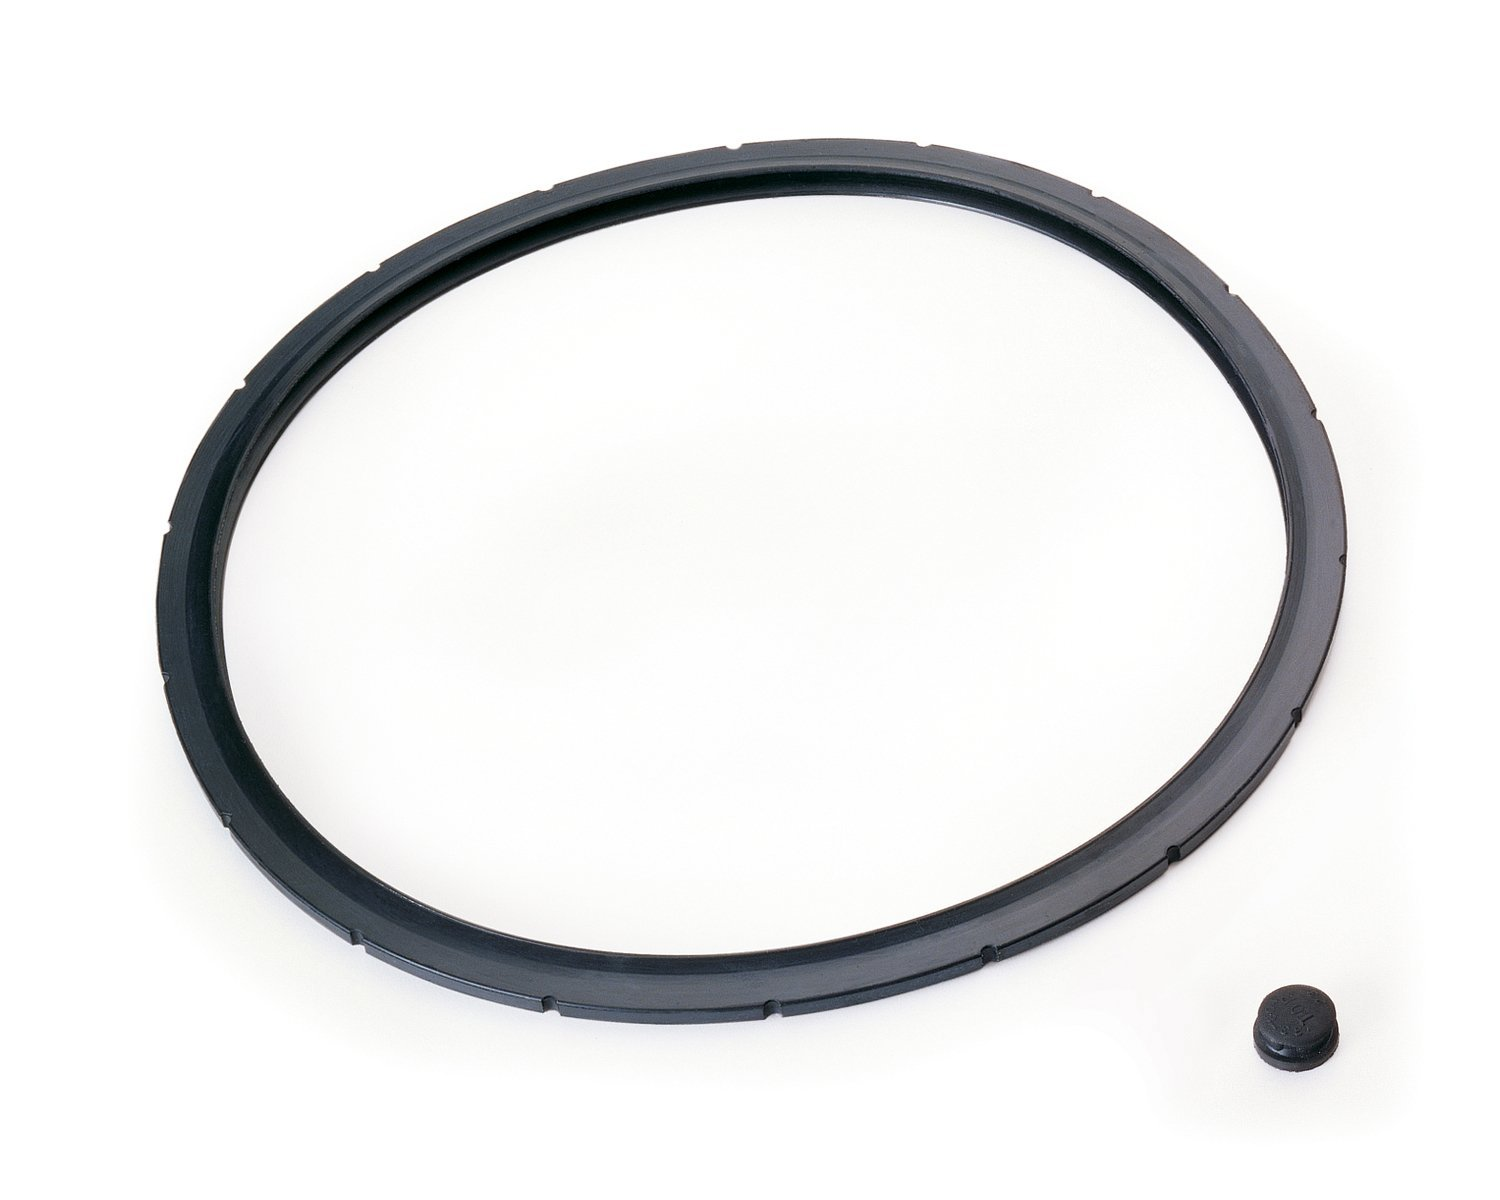 09903 Pressure Cooker Sealing Ring Overpressure Plug Pack (3 & 4 Quart), Ship from USA,Brand Presto by